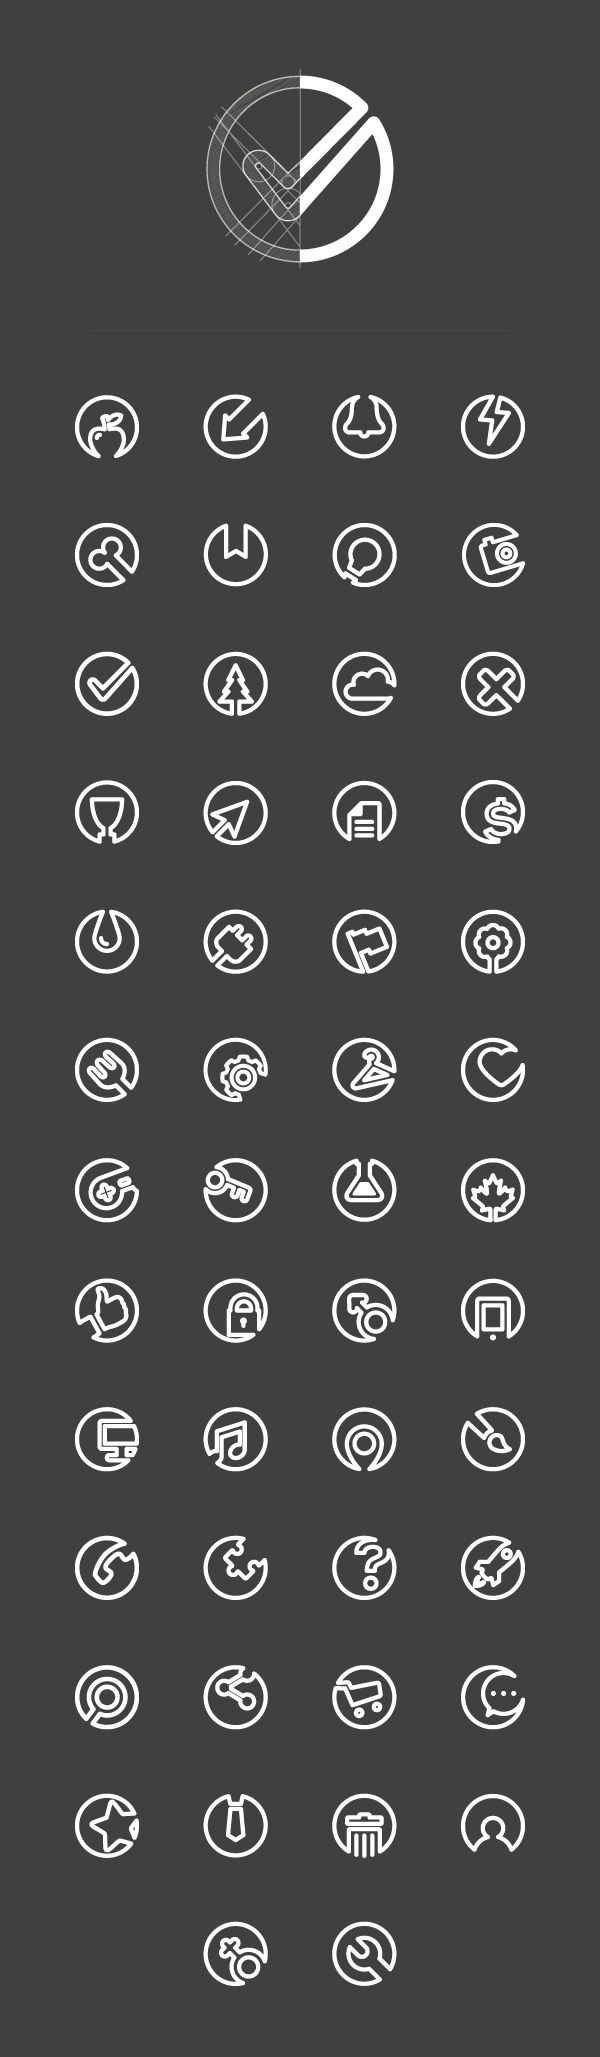 Flat line icons on Behance More